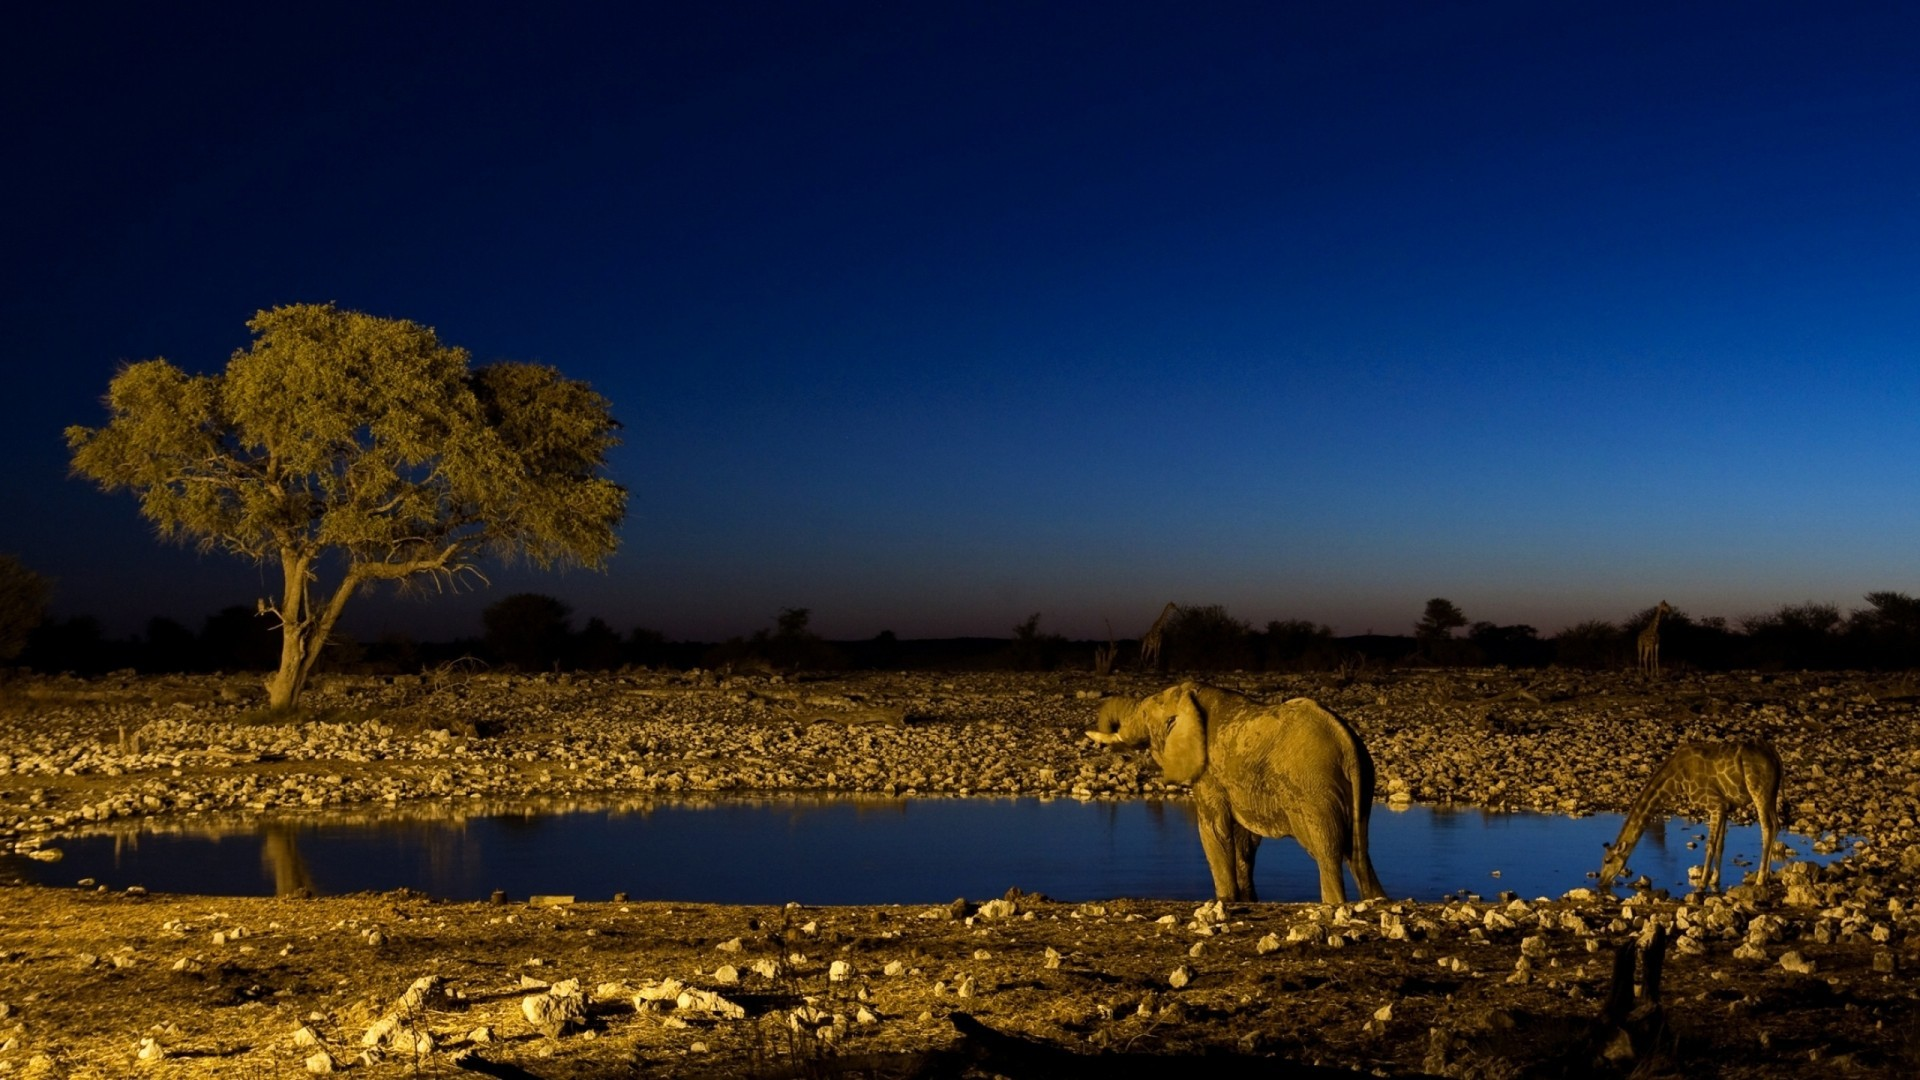 Landscapes Animals ponds elephants HD Wallpaper